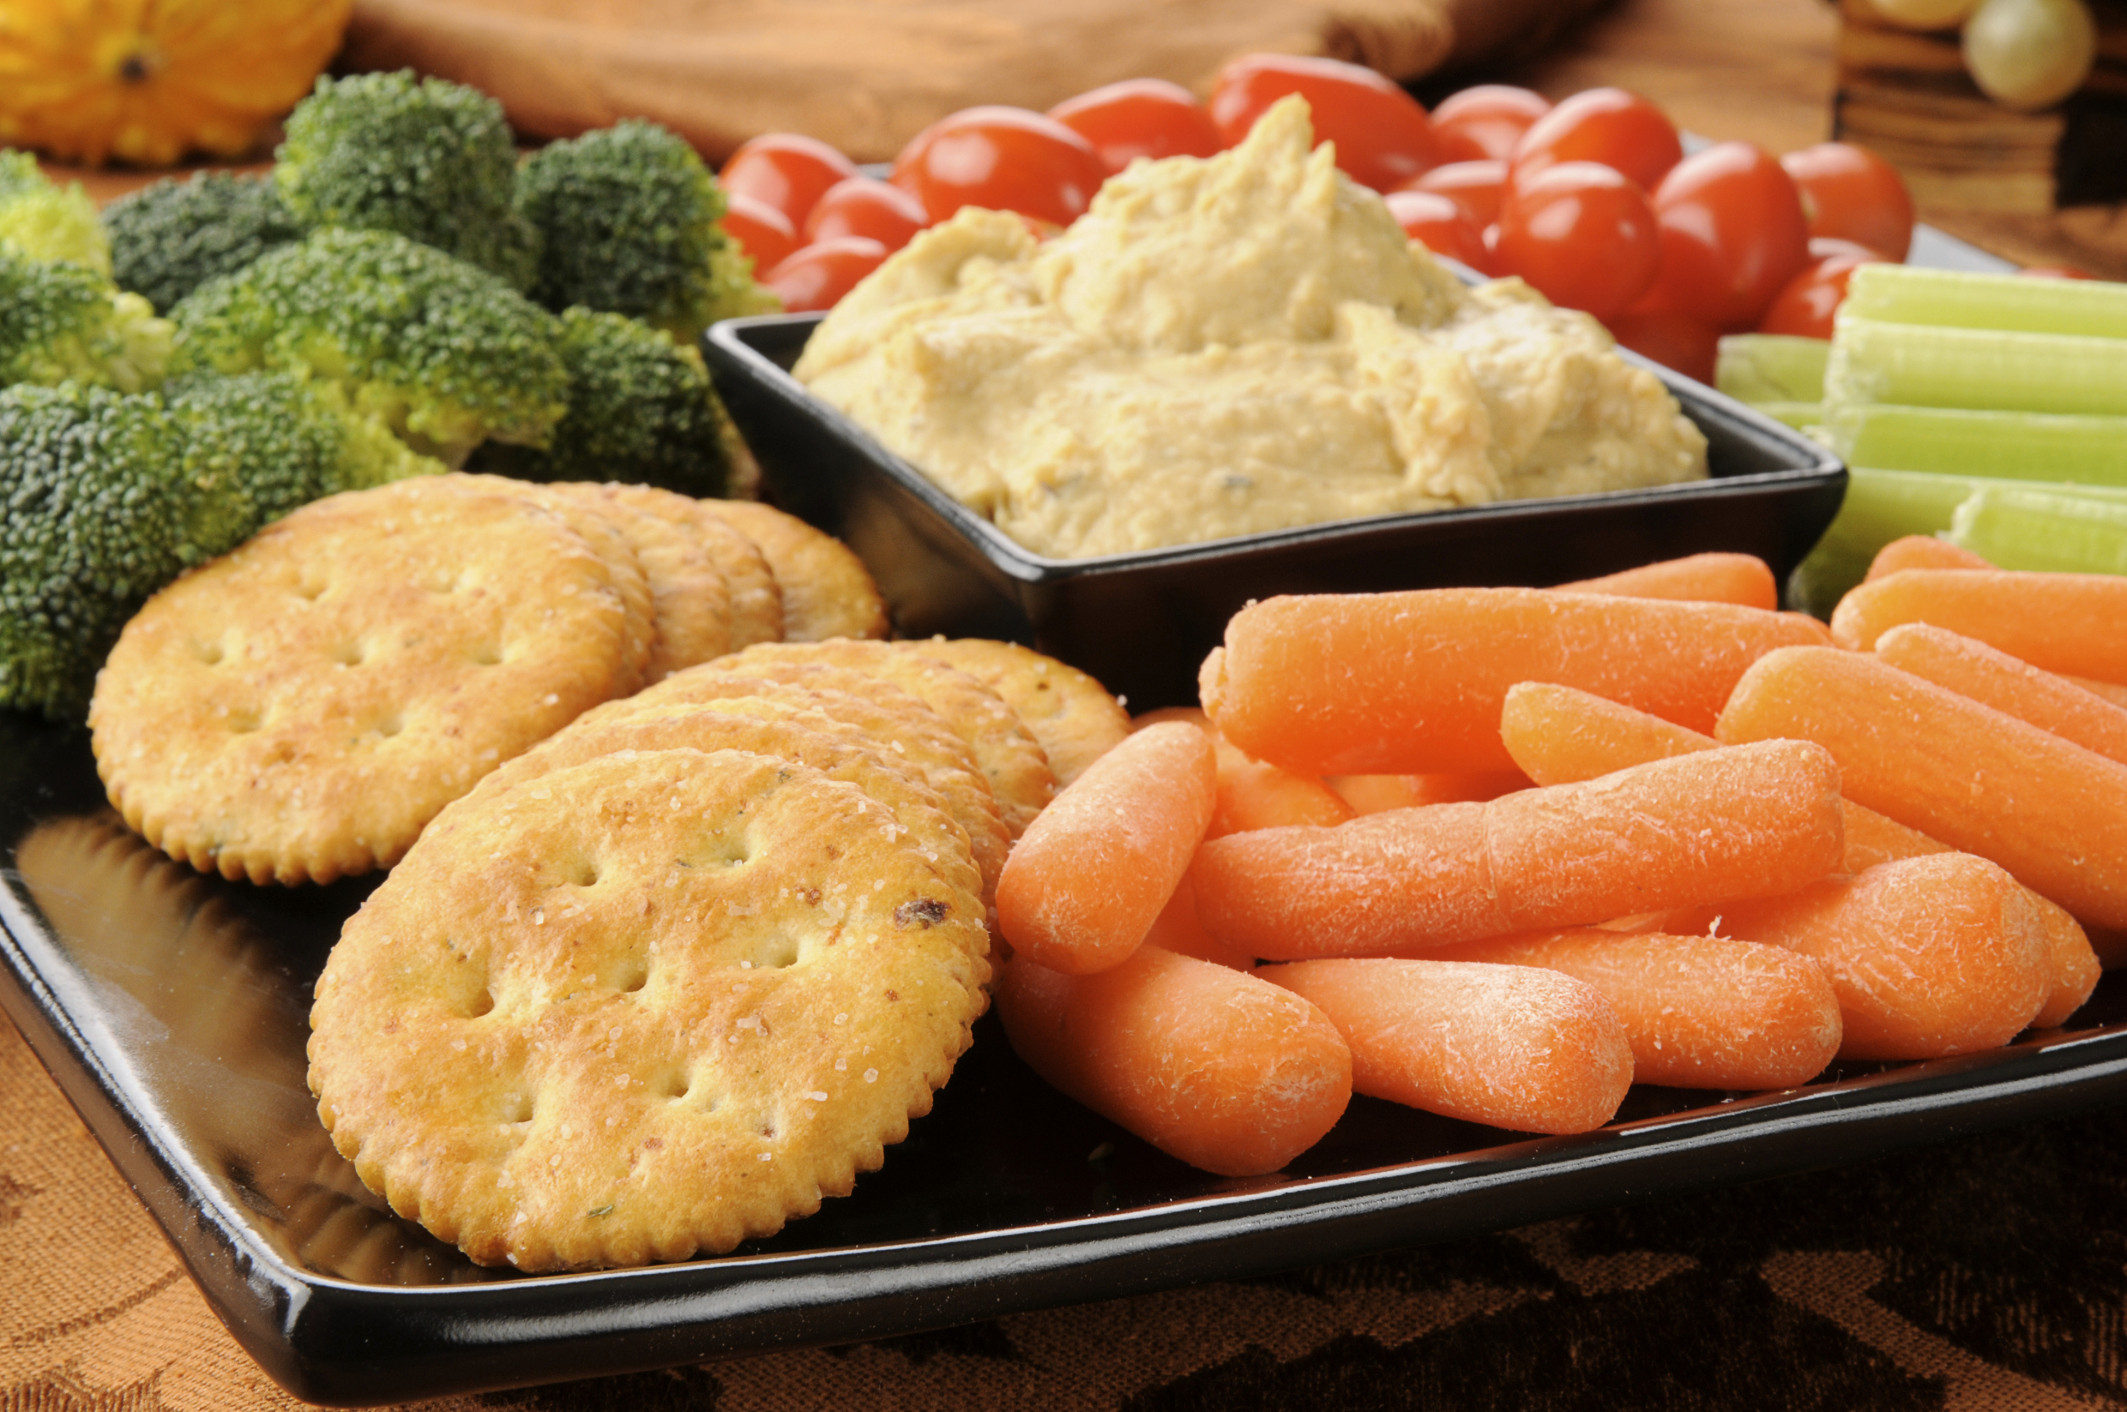 Healthy Snacks For Weight Gain  Healthy Snacks for Weight Gain